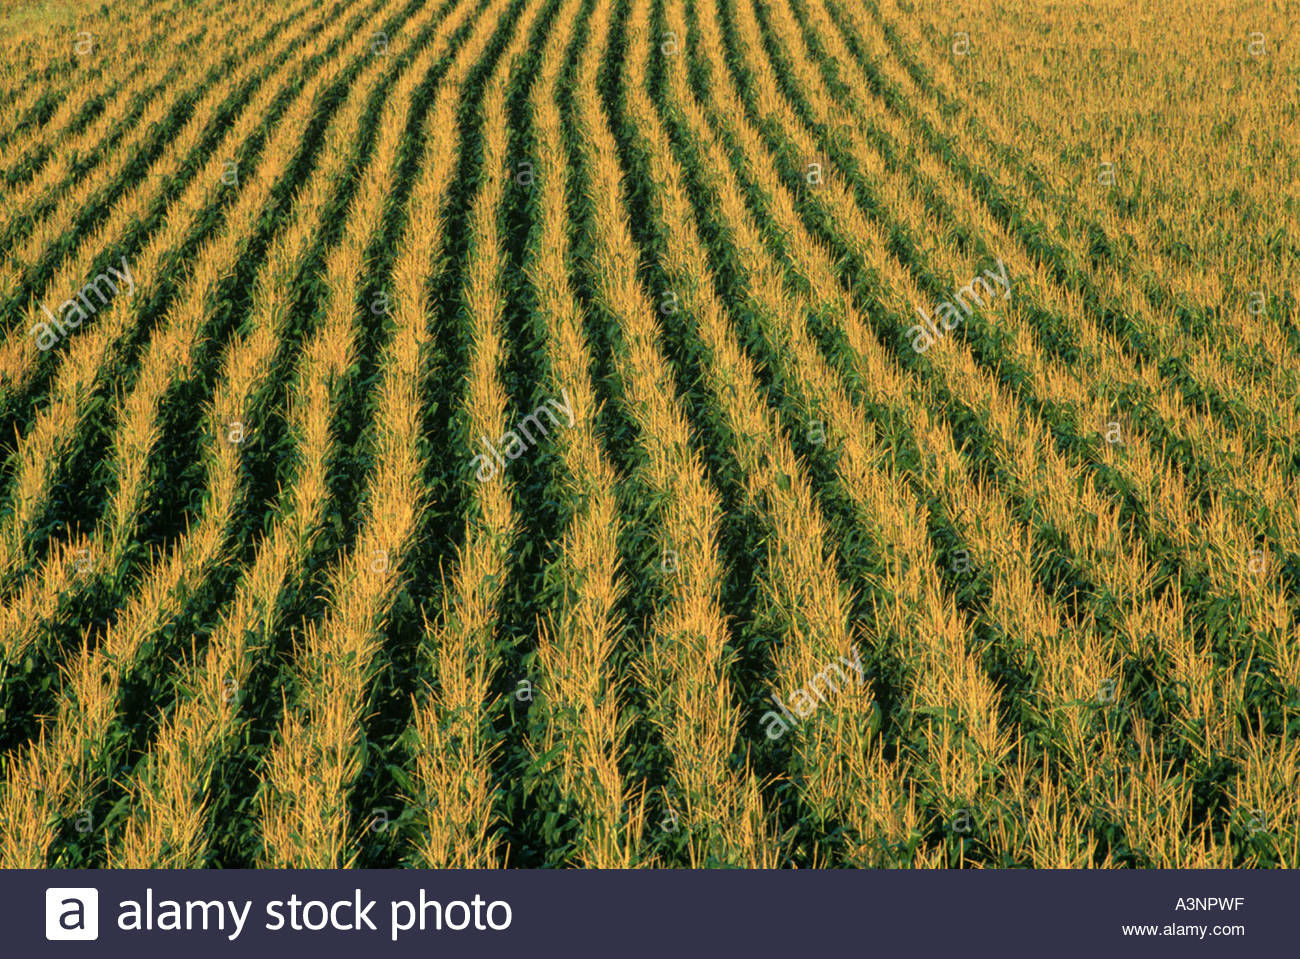 rows-in-a-cornfield-in-ontario-canada-A3